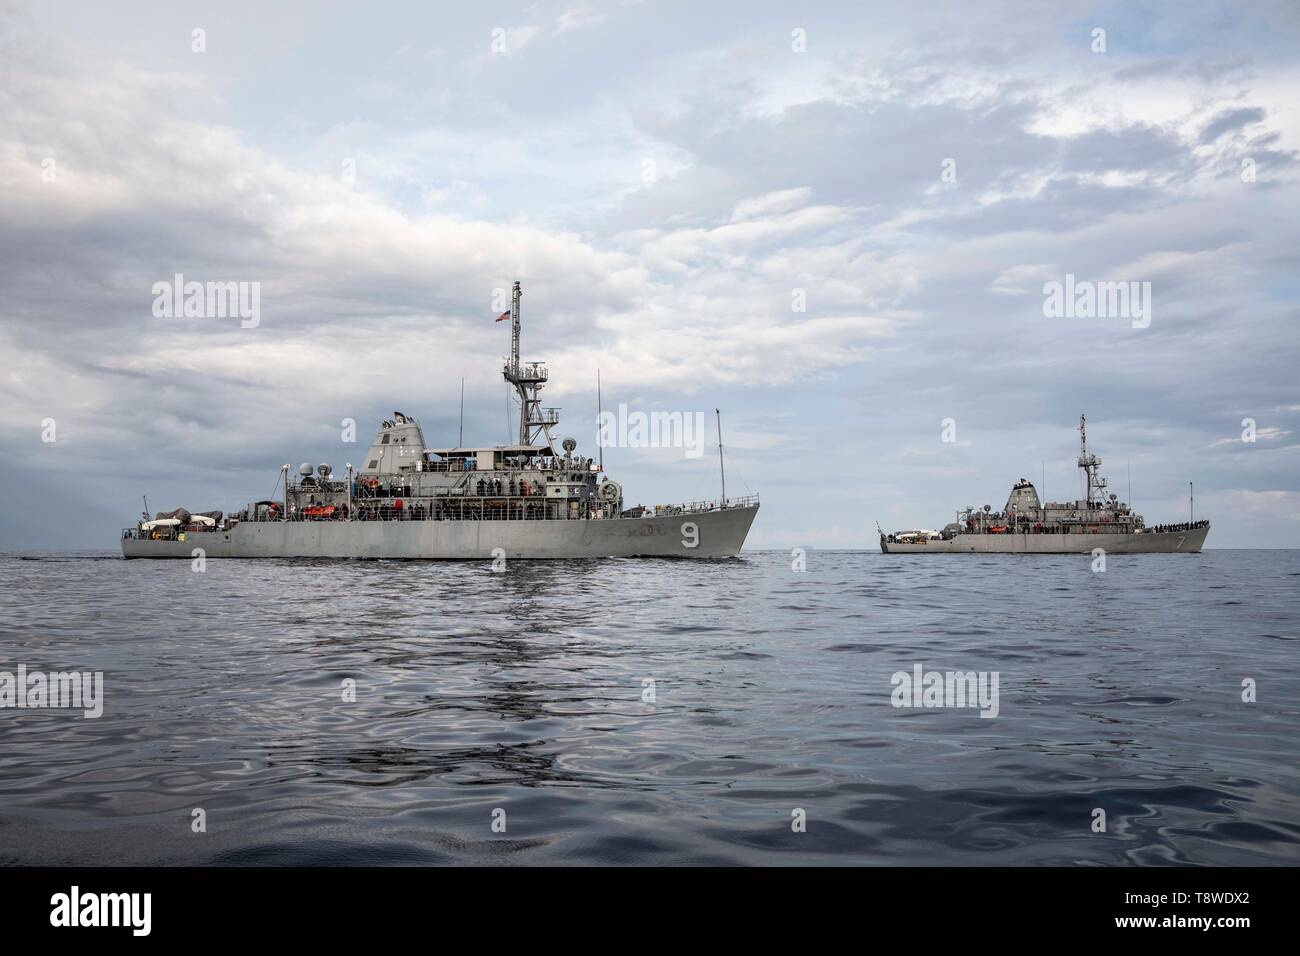 190508-N-AD347-1105 SOUTH CHINA SEA (May 8, 2019) Sailors pose for a photo on the weather decks of the Avenger-class mine countermeasures ship USS Pioneer (MCM 9) and her sister ship USS Patriot (MCM 7) while underway. Both Pioneer and Patriot, part of Mine Countermeasures Squadron 7, are operating in the U.S. 7th Fleet area of operations to enhance interoperability with partners and serve as a ready-response platform for contingency operations. (U.S. Navy photo by Lt. j.g. Alexander Fairbanks) - Stock Image